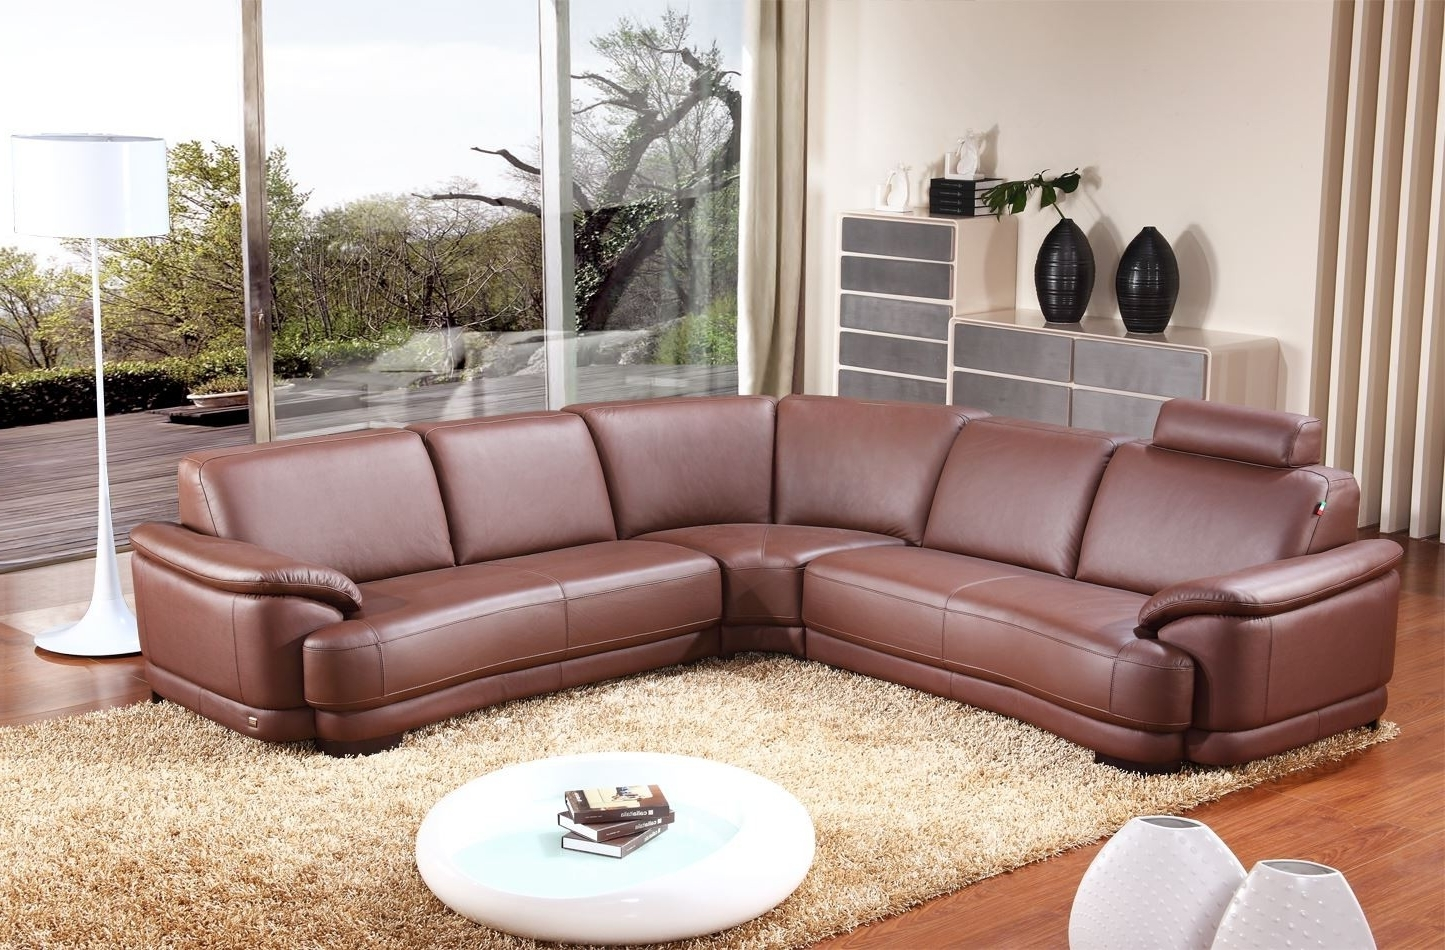 Leather Corner Sofas With Regard To Well Known Corner Sofas In Leather 27 With Corner Sofas In Leather (View 10 of 15)